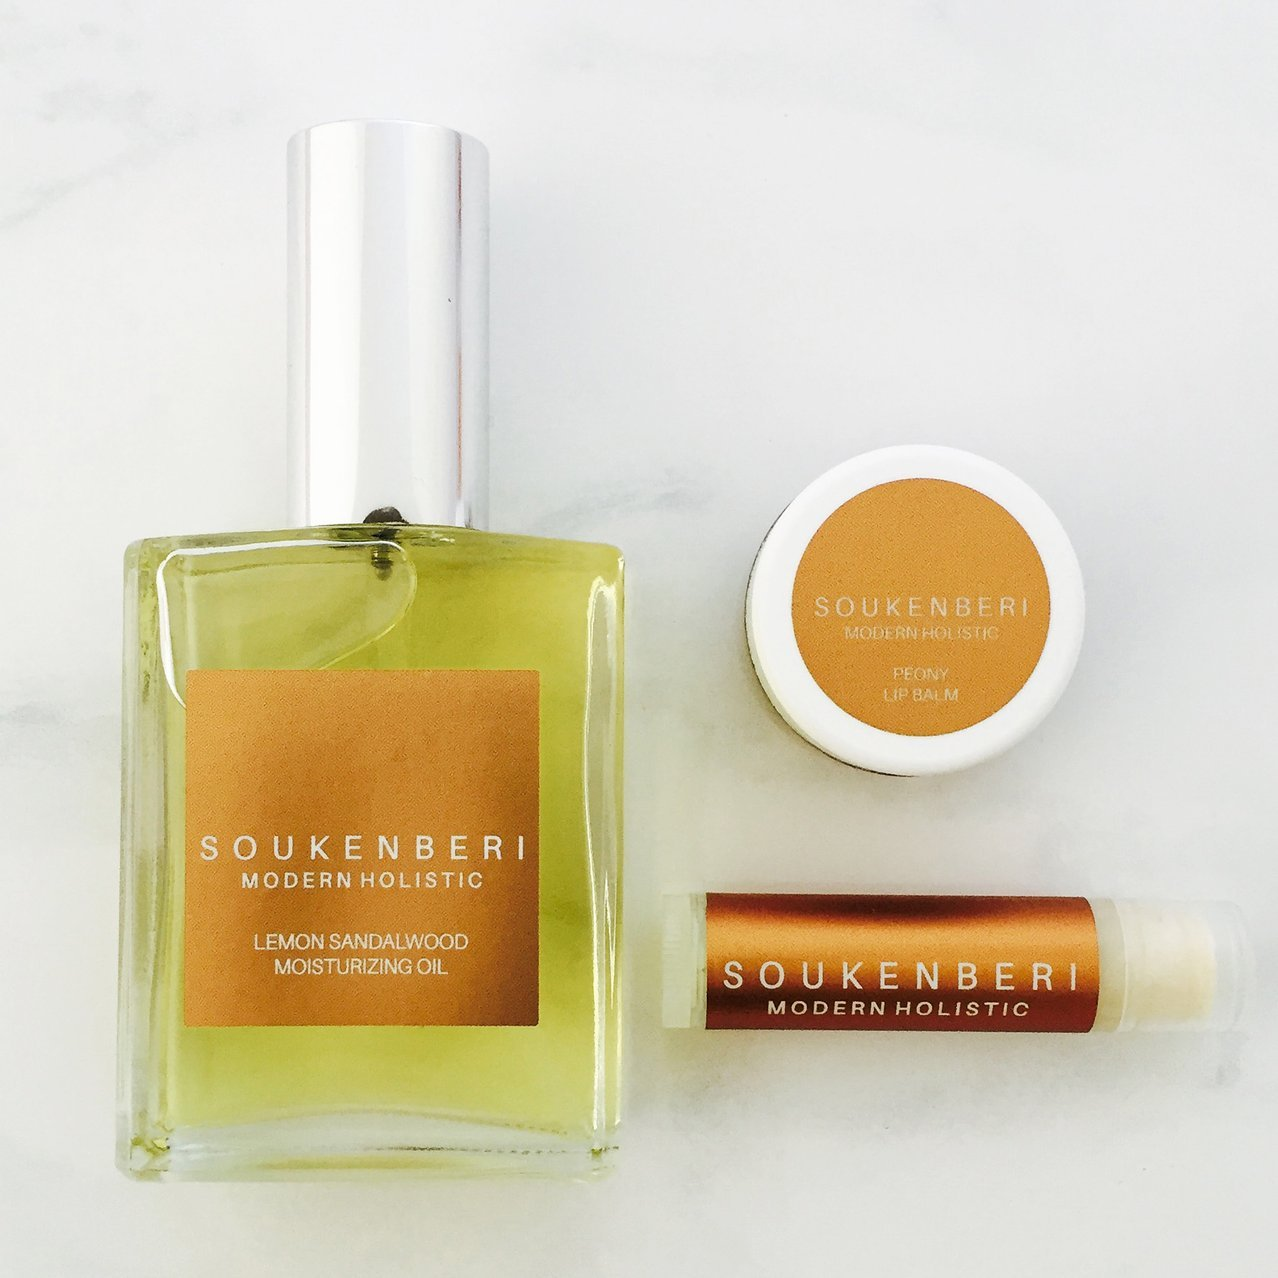 Personal aromatherapy just for you. Vegan Skincare. Protecting skin as nature intended {20% off}{F} - SoukenberiUse code: JP20 for 20% Discount. Valid: 11/22 to 11/26. We ship only within Continental USPopular: Moisturizing Oil Giftset